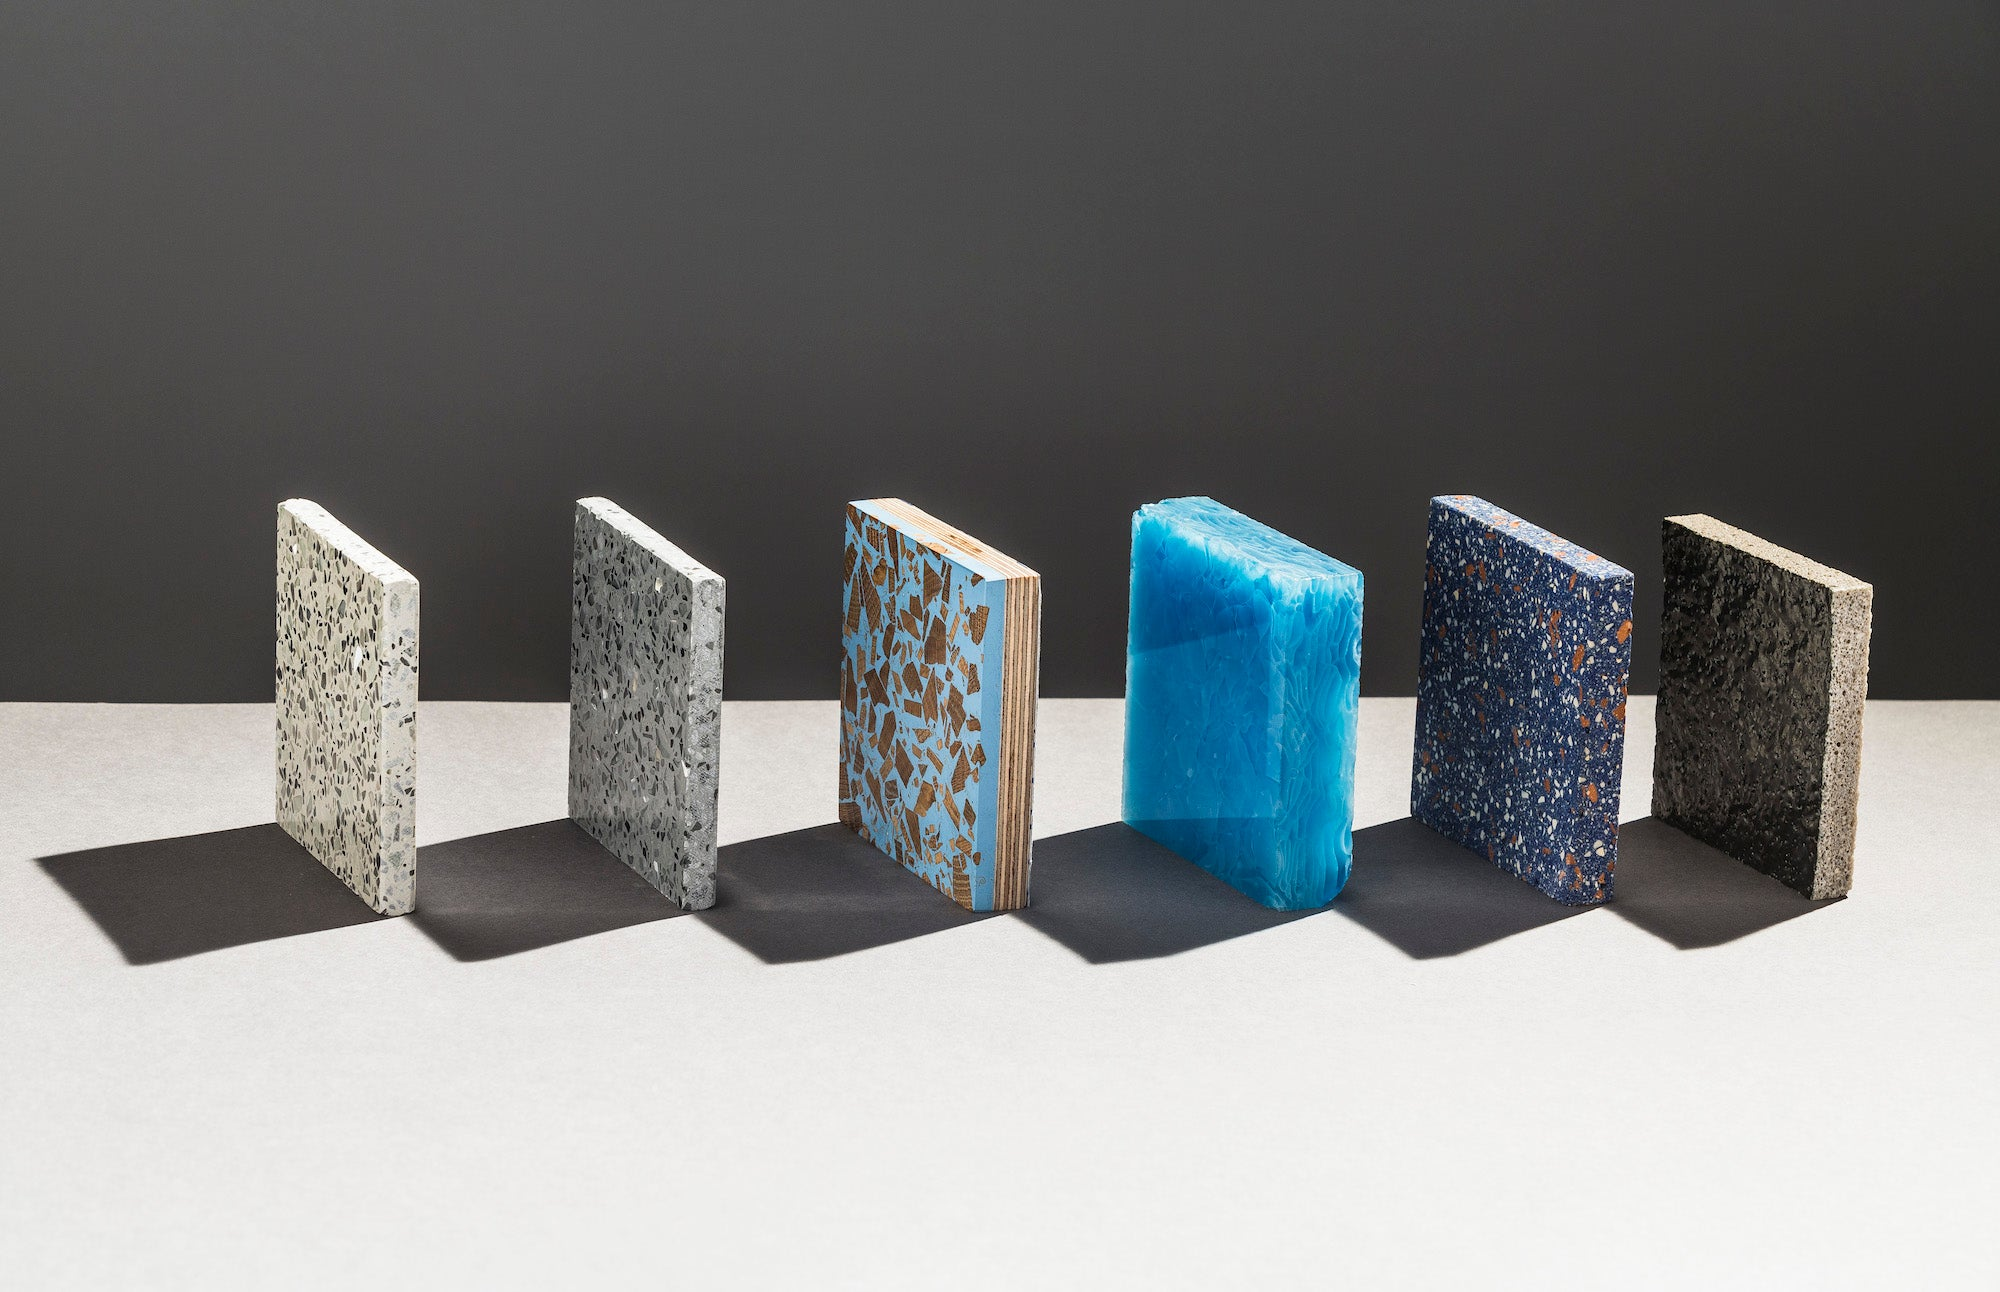 In Conversation with Sam Wood, Material Lab